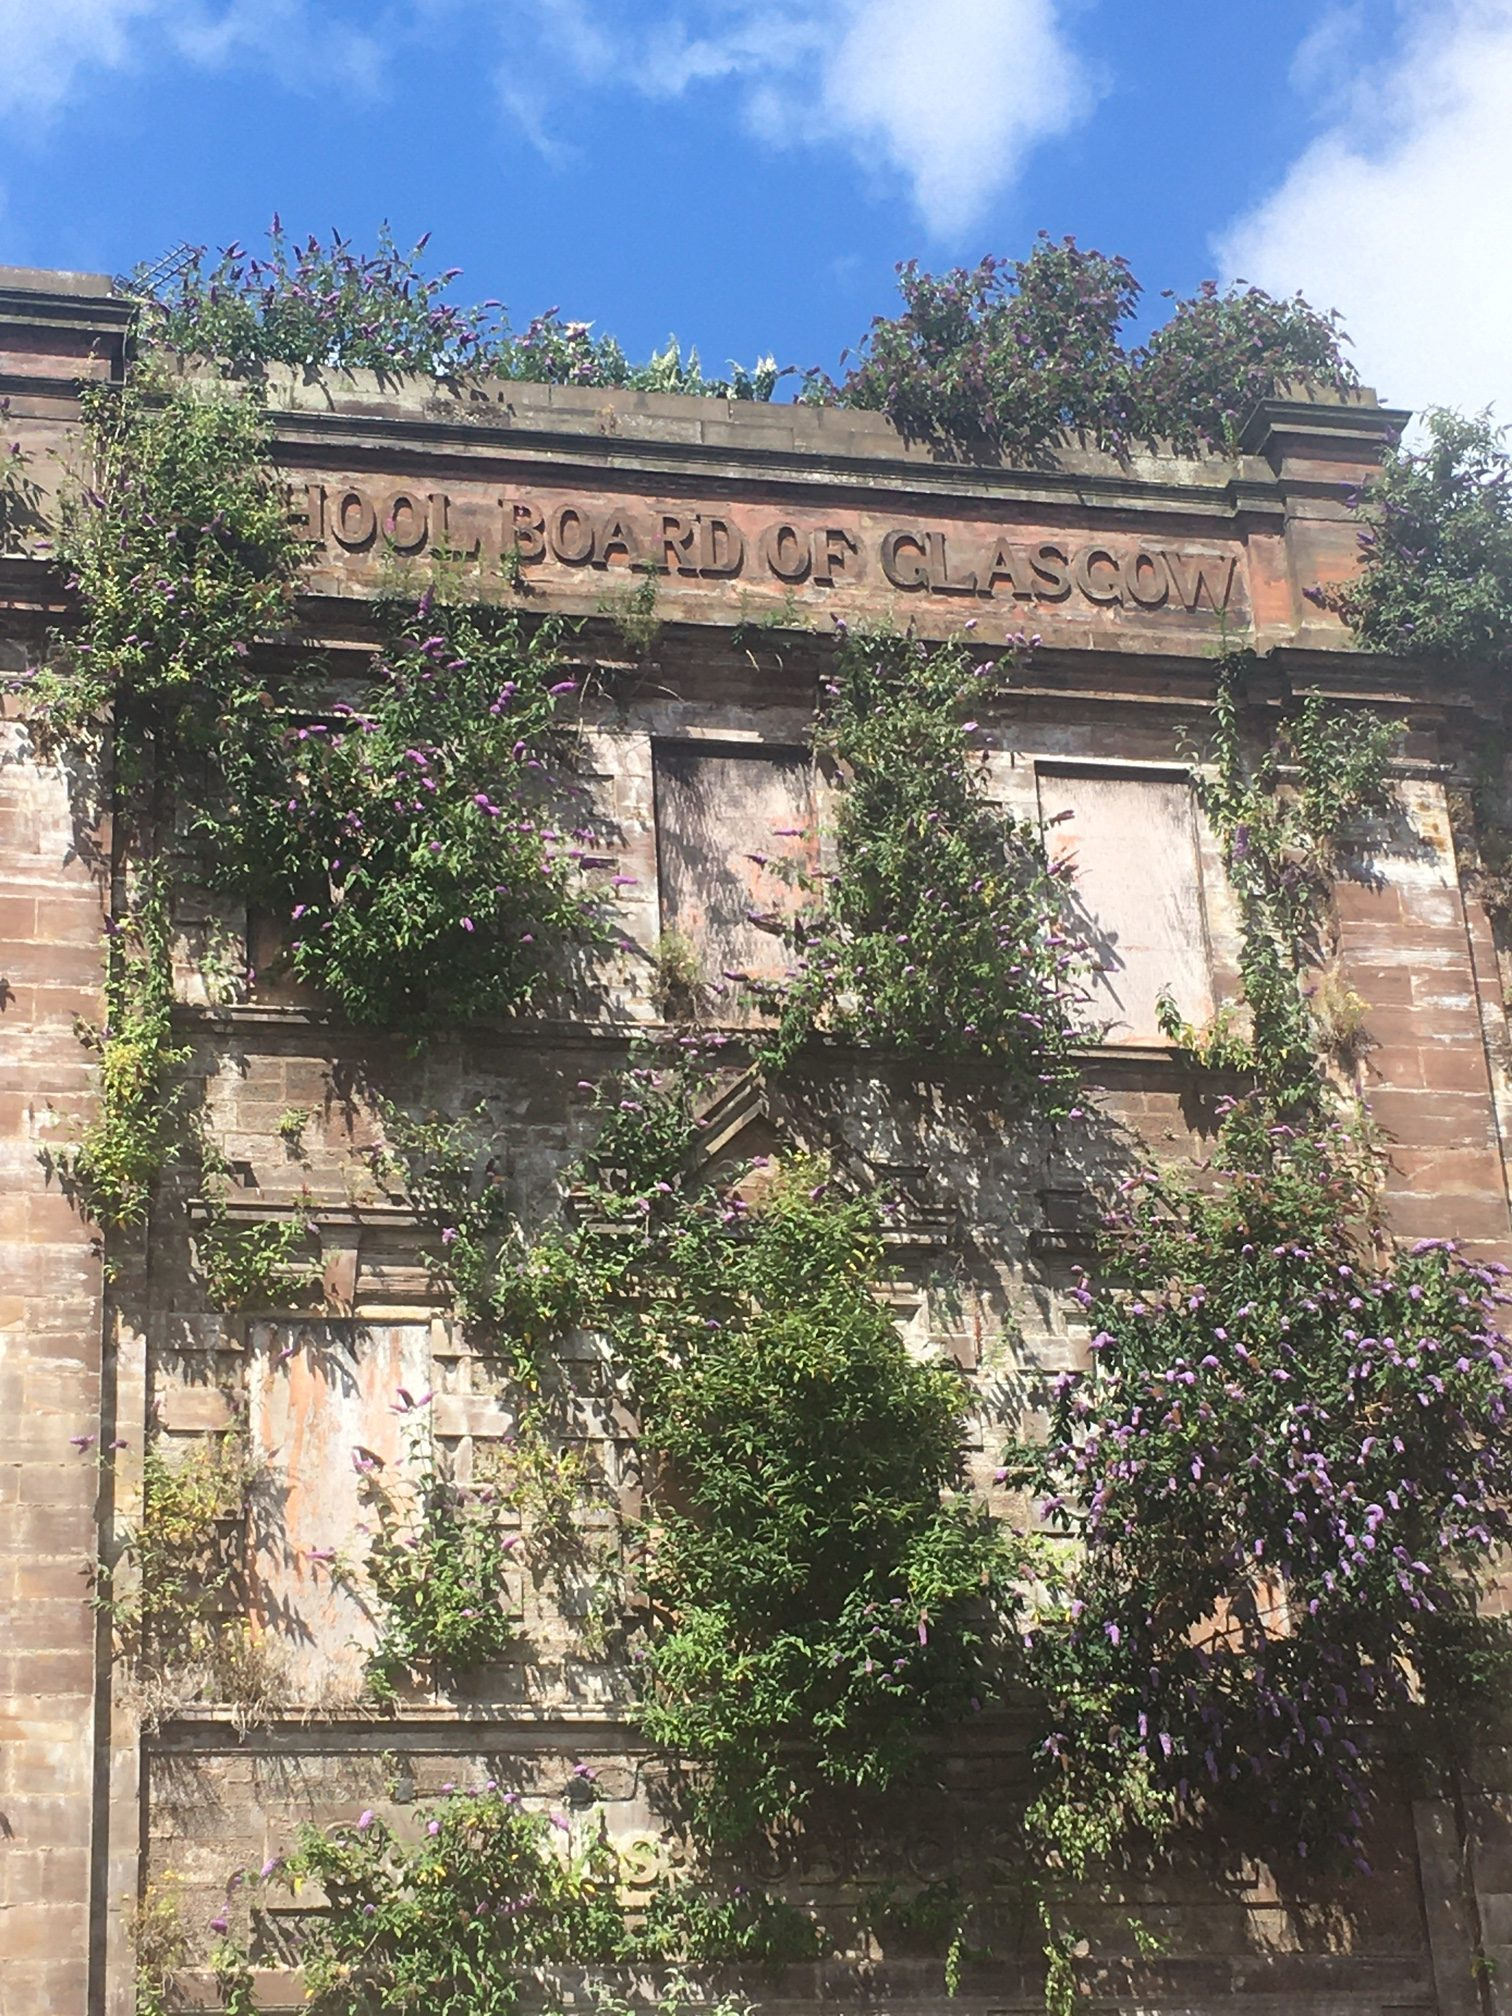 The photograph shows St James' school, with buddleia sprouting profusely over the front elevation.